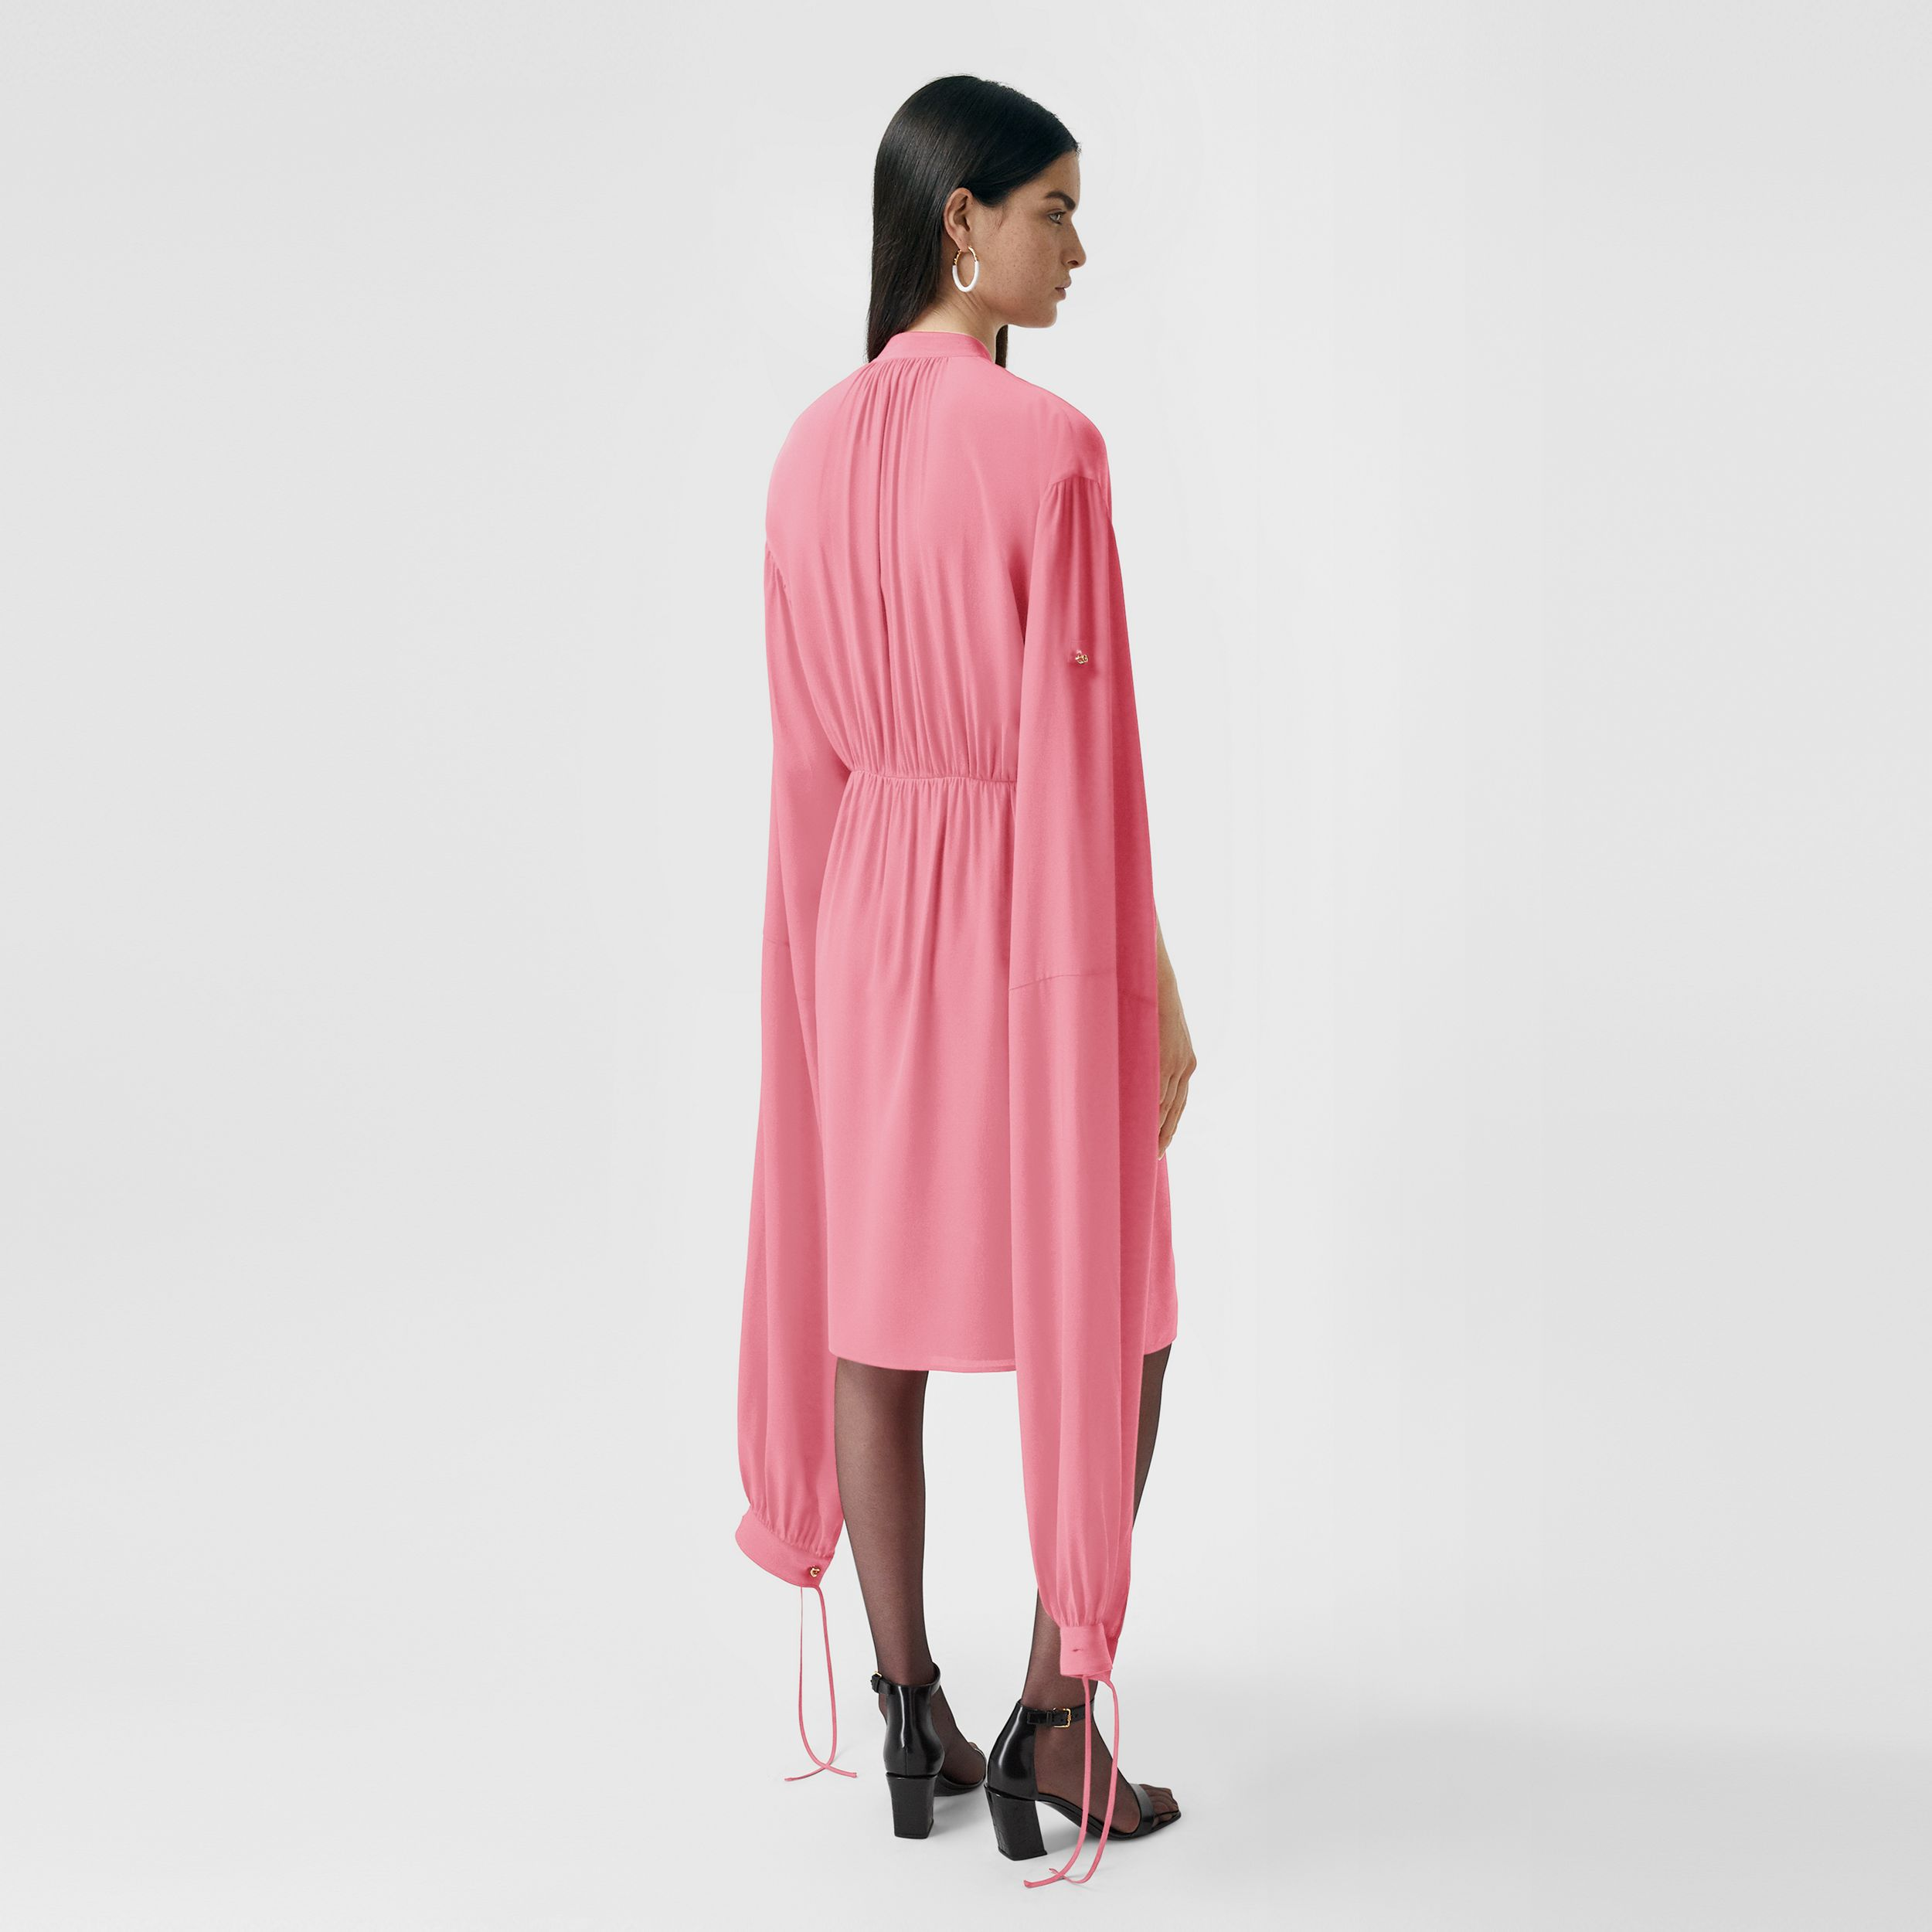 Loop-back Sleeve Silk Crepe De Chine Dress in Bubblegum Pink - Women | Burberry - 3